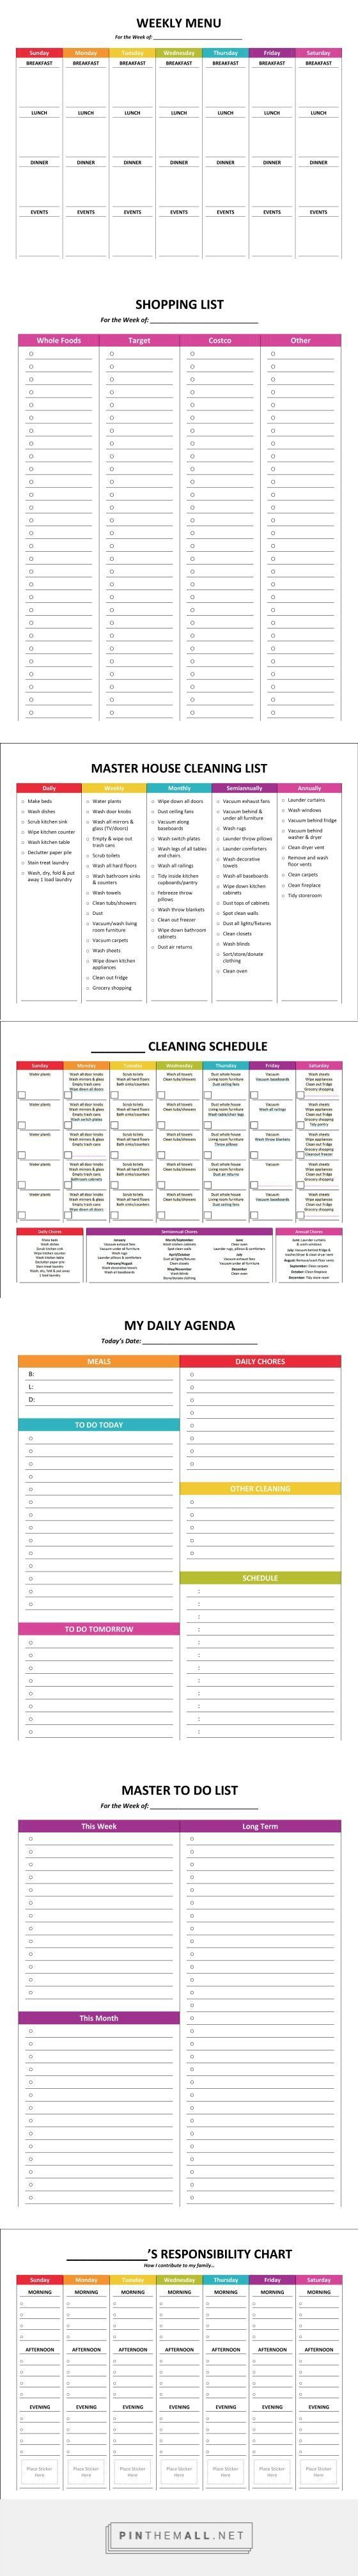 Complete Housekeeping Printable Set!   Visual reminders and supports for daily and weekly chores, including menu planning, shopping lists, chore responsibility chart and more.